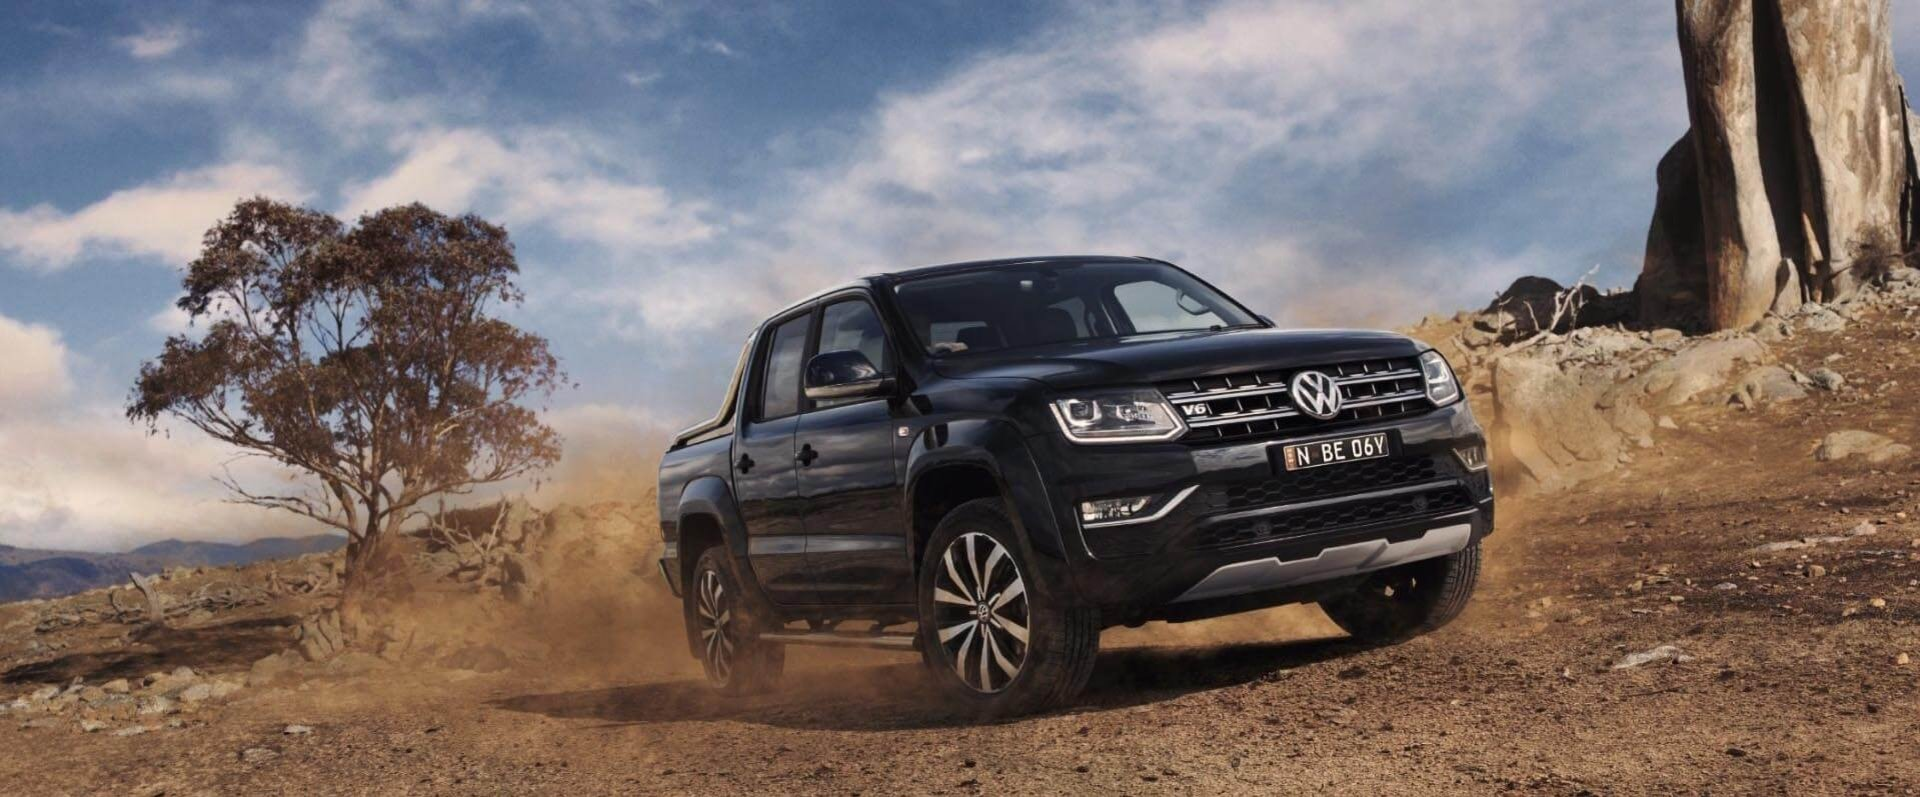 The Amarok V6 Ultimate 580 no available at Beachside Volkswagen